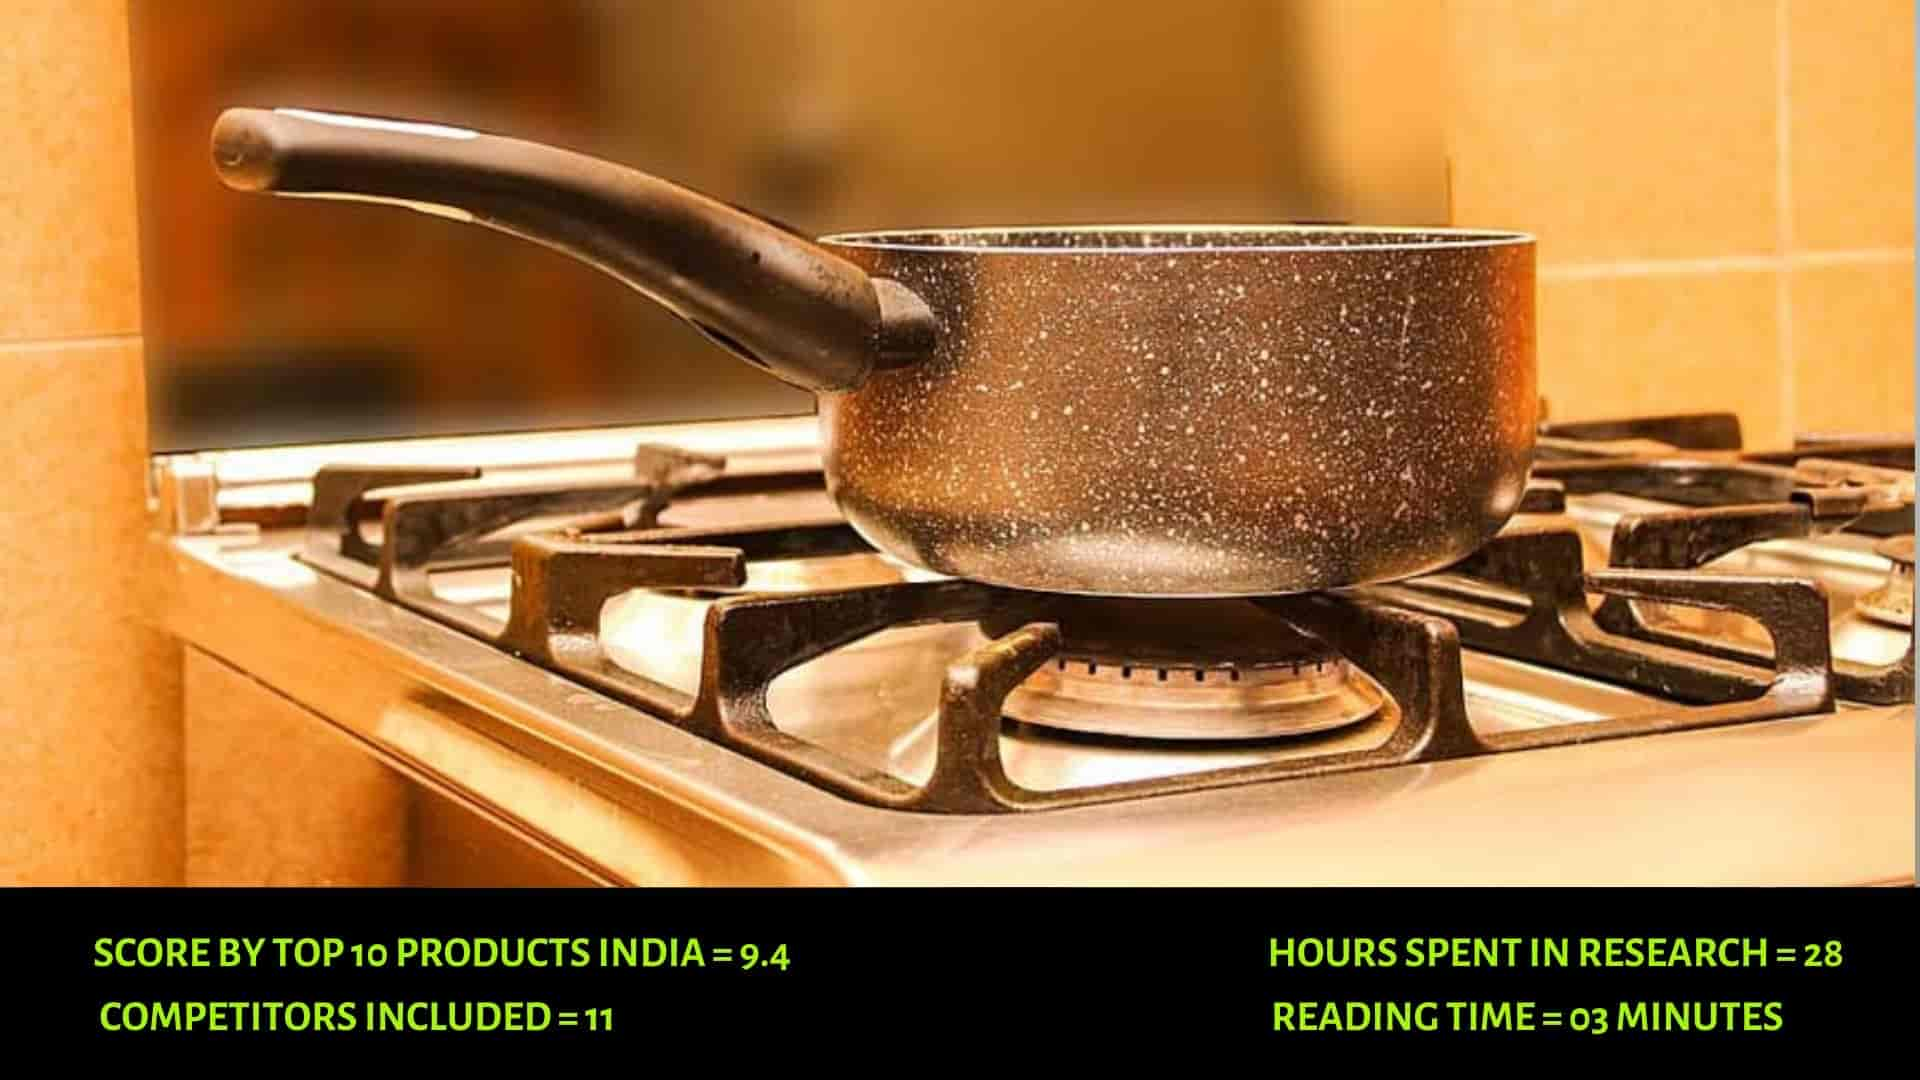 Do Read Our Kaff Gas Stove Review Before Buying!